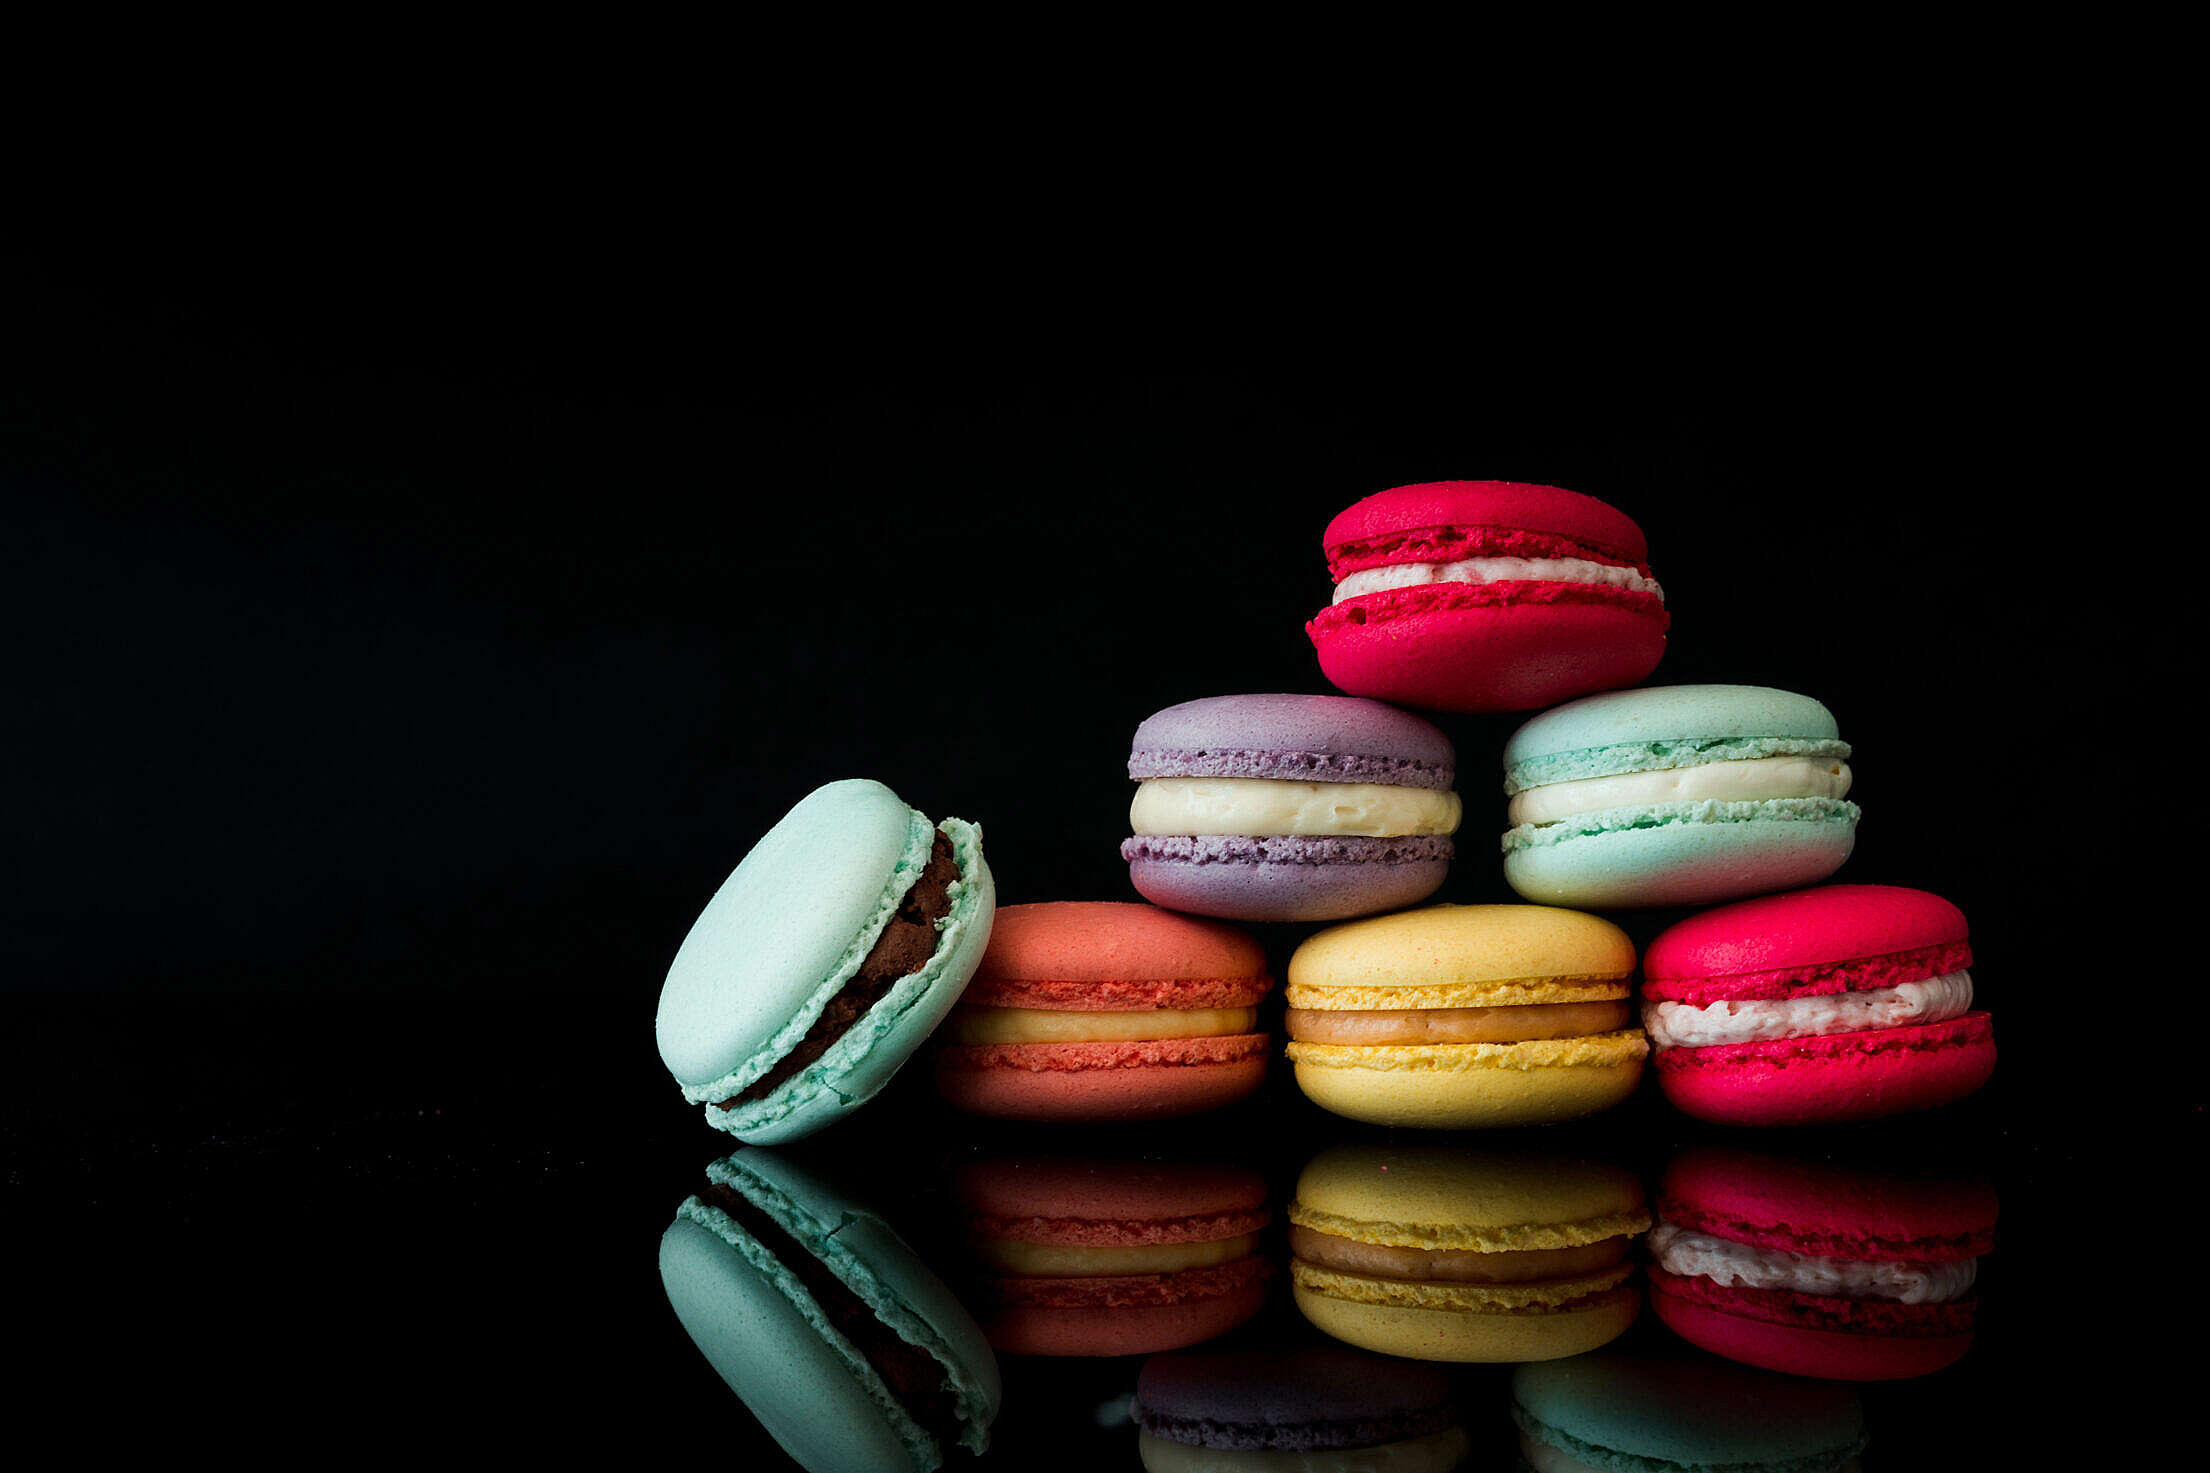 Colorful Macarons Still Life Black Background Free Stock Photo